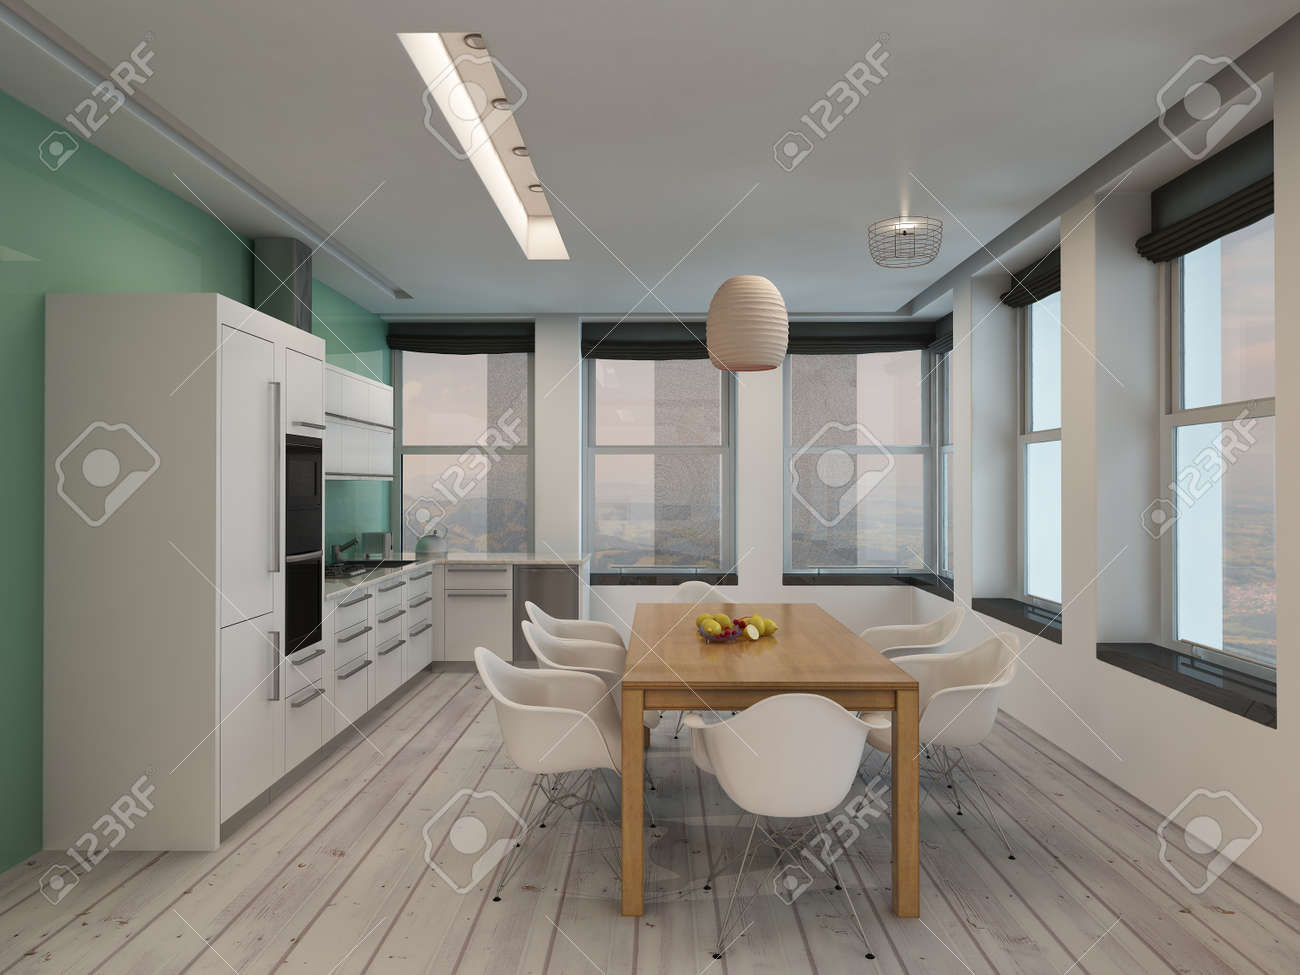 Open plan modern kitchen and dining room interior with built..